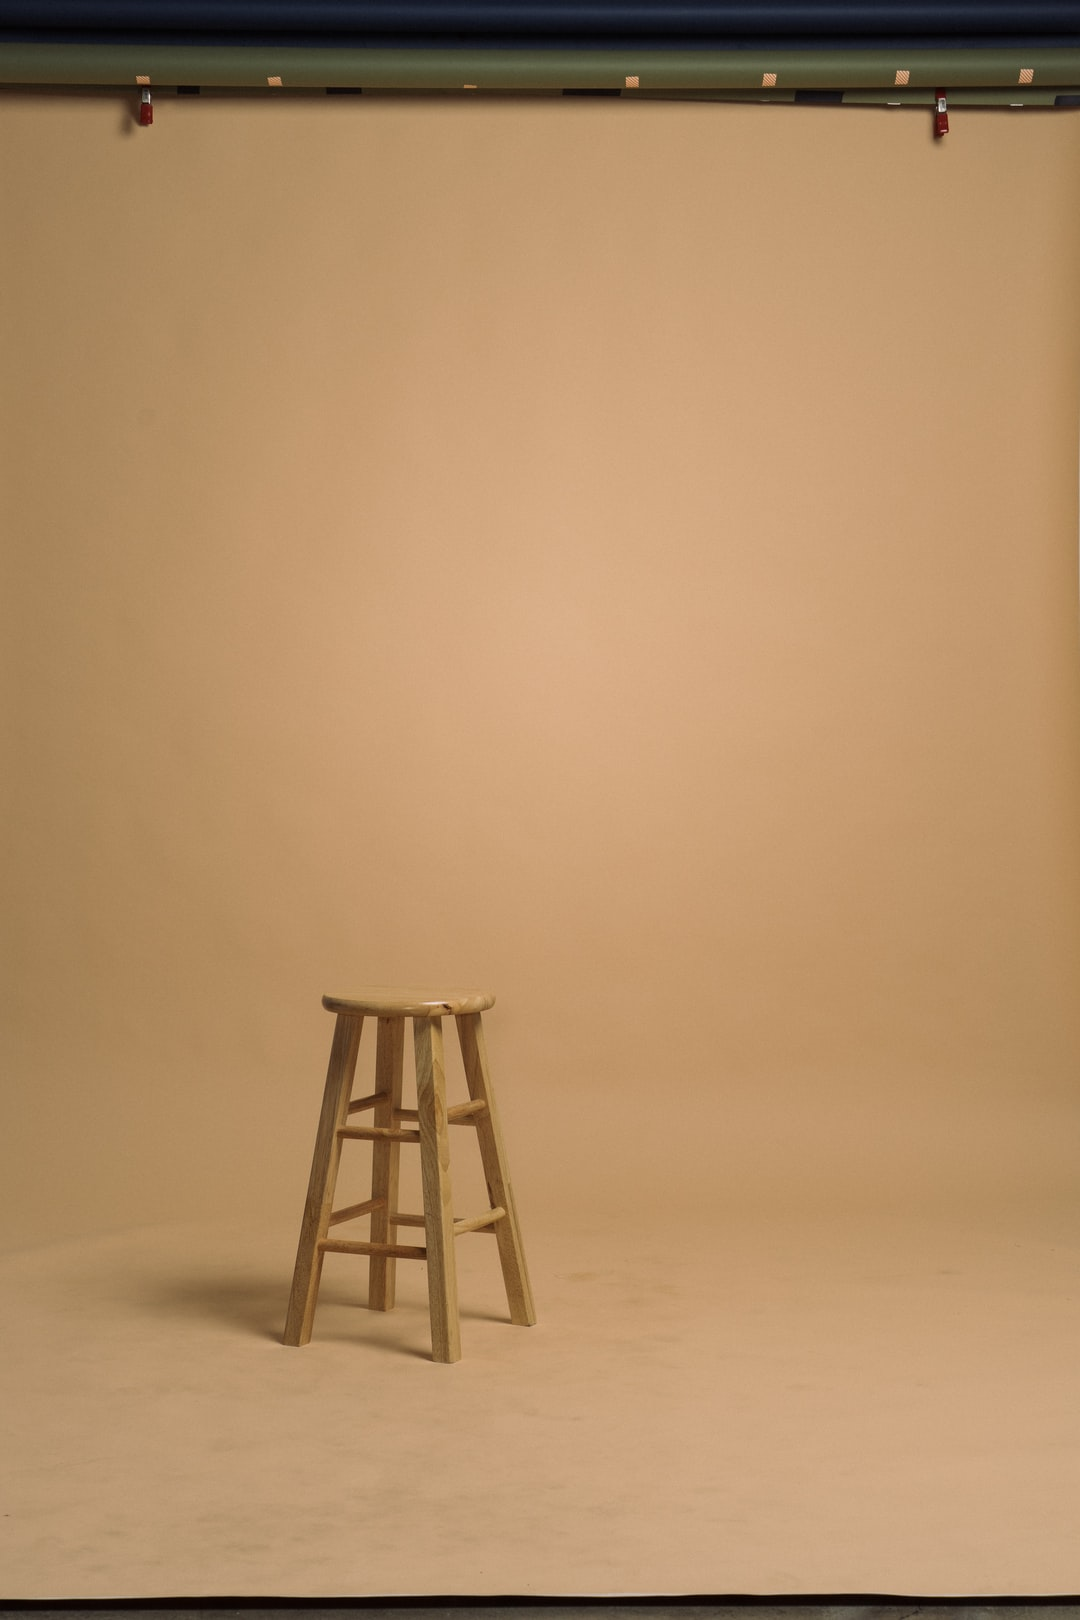 Cream seamless backdrop with stool background plate Shot by Chase Wilson http://agroism.com